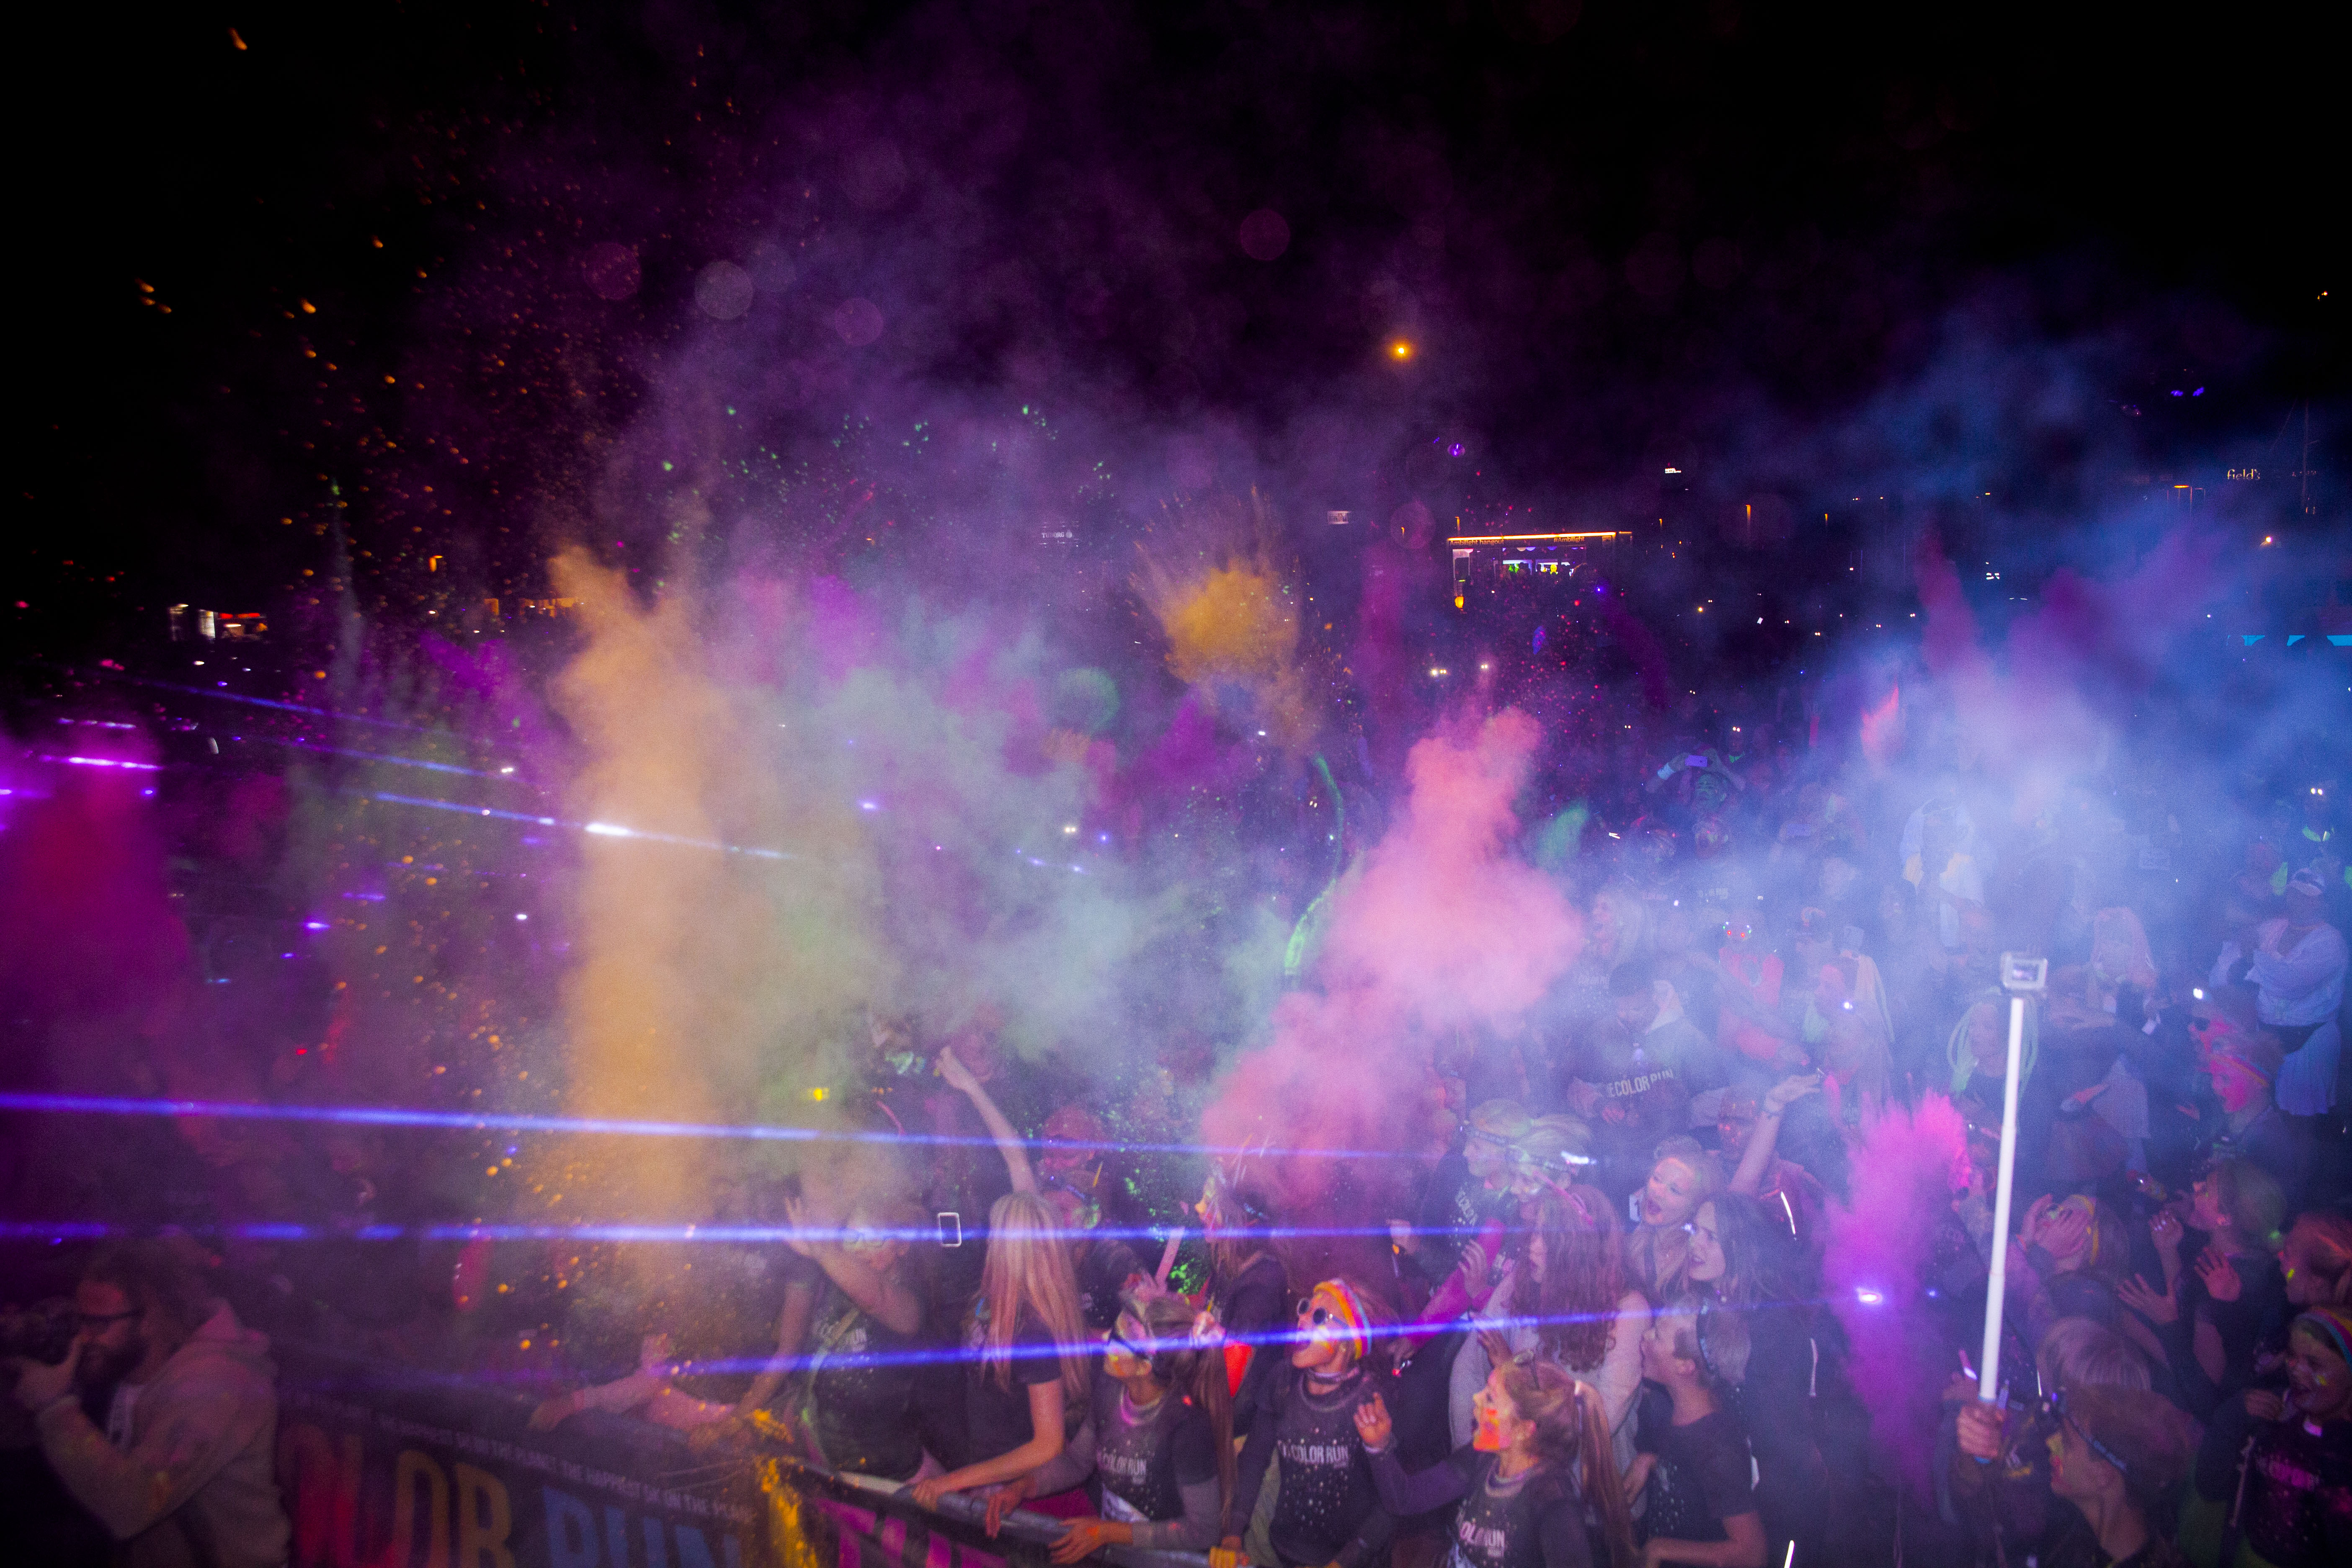 TheColorRunNight2015_HelenaLundquist_mindre_30